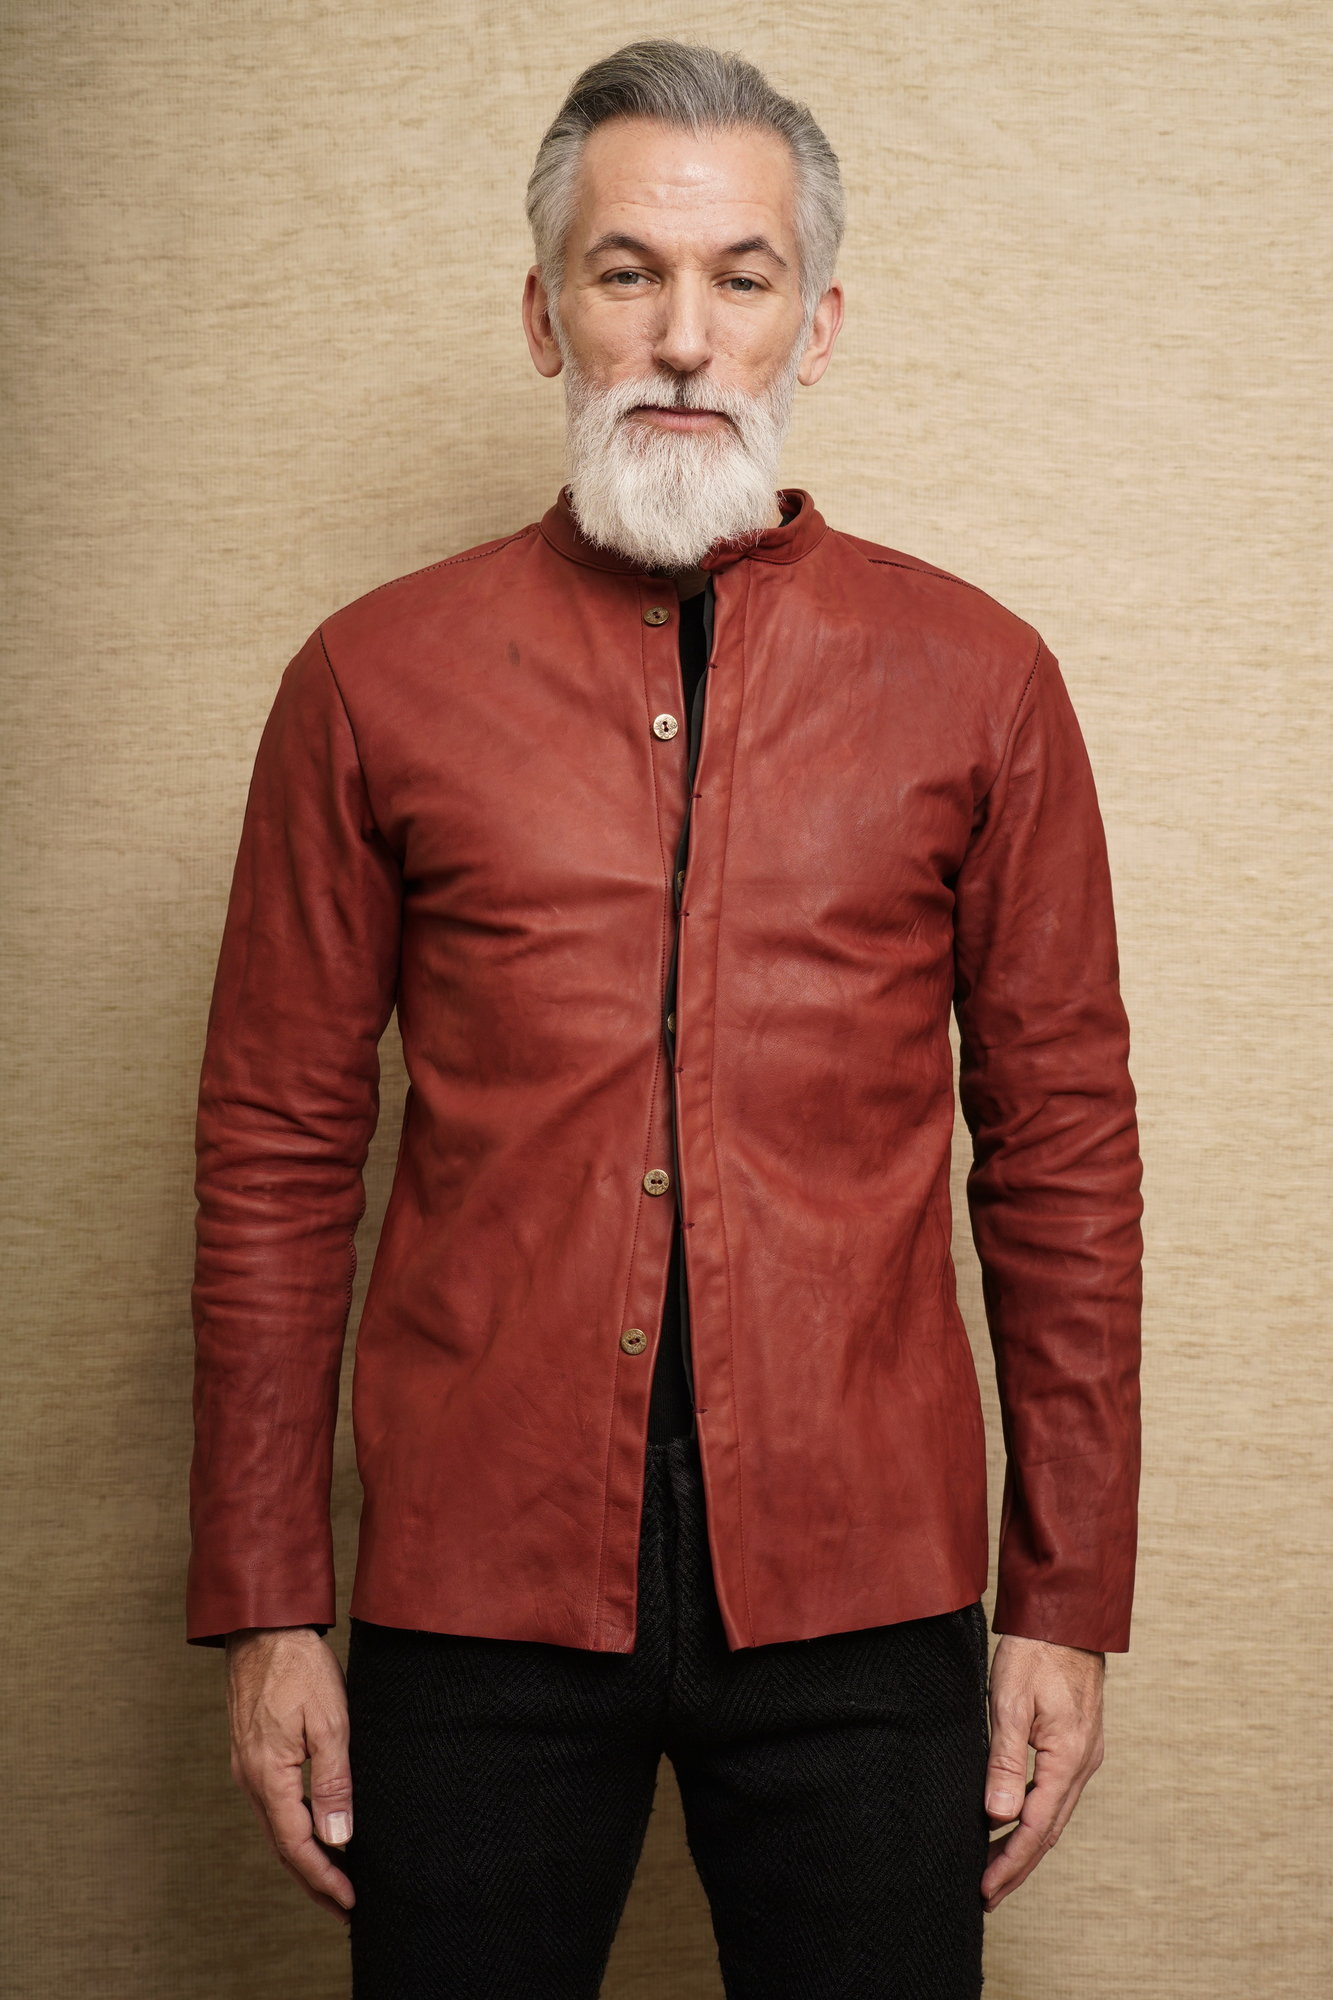 Raglan front leather shirt_5.JPG